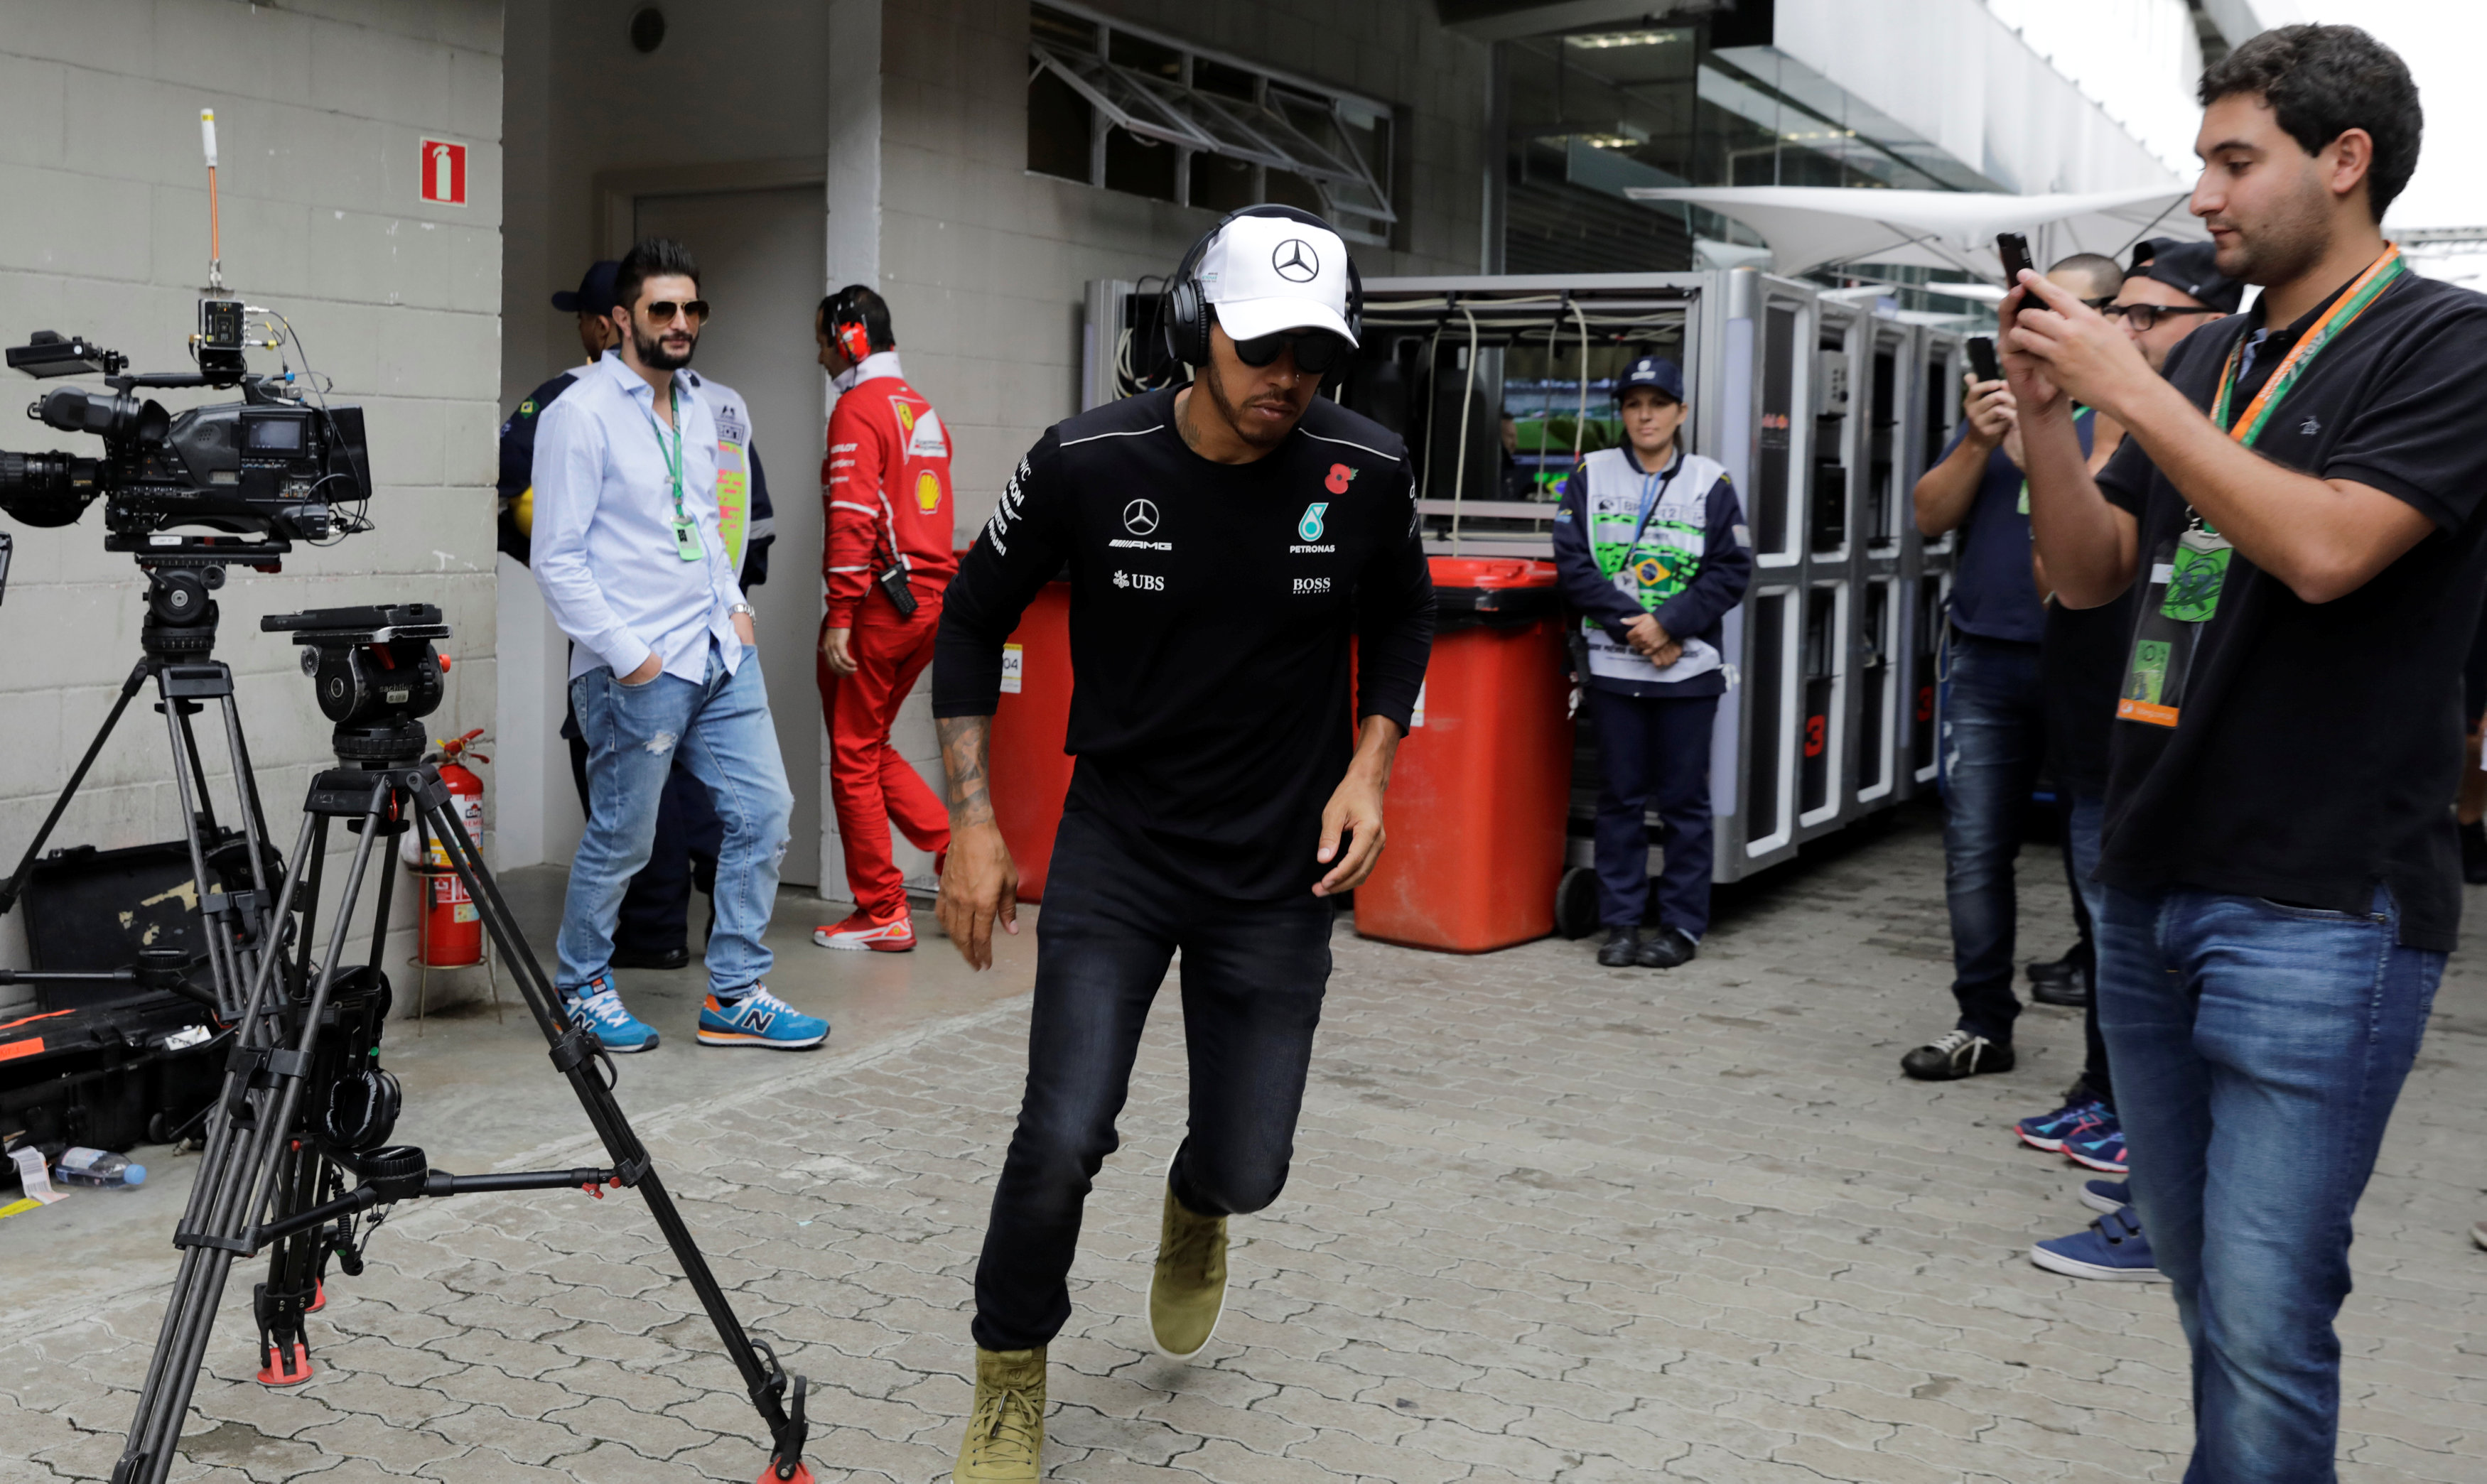 F1: Brazil GP security tightened after armed robbery